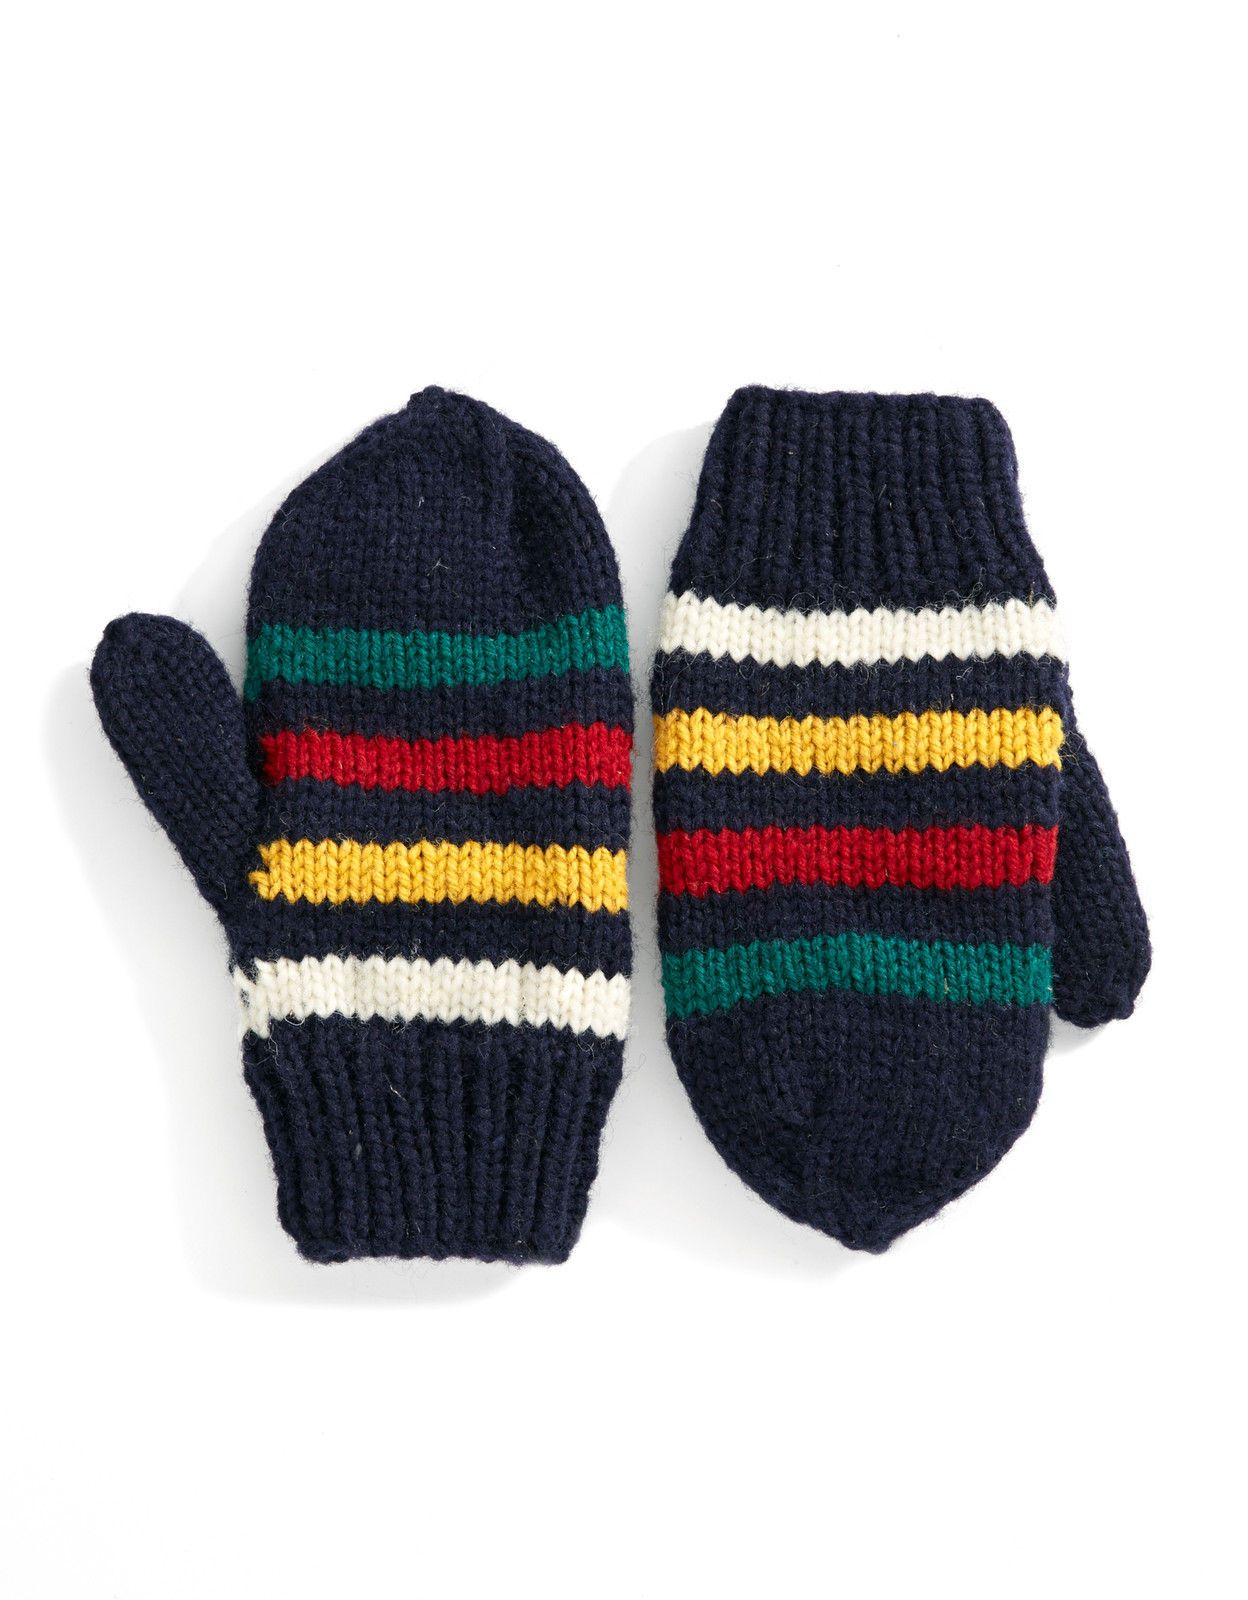 Hudsons bay company hbc navy multi stripe hand knit wool hudsons bay company hbc navy multi stripe hand knit wool mittens size sm bankloansurffo Image collections